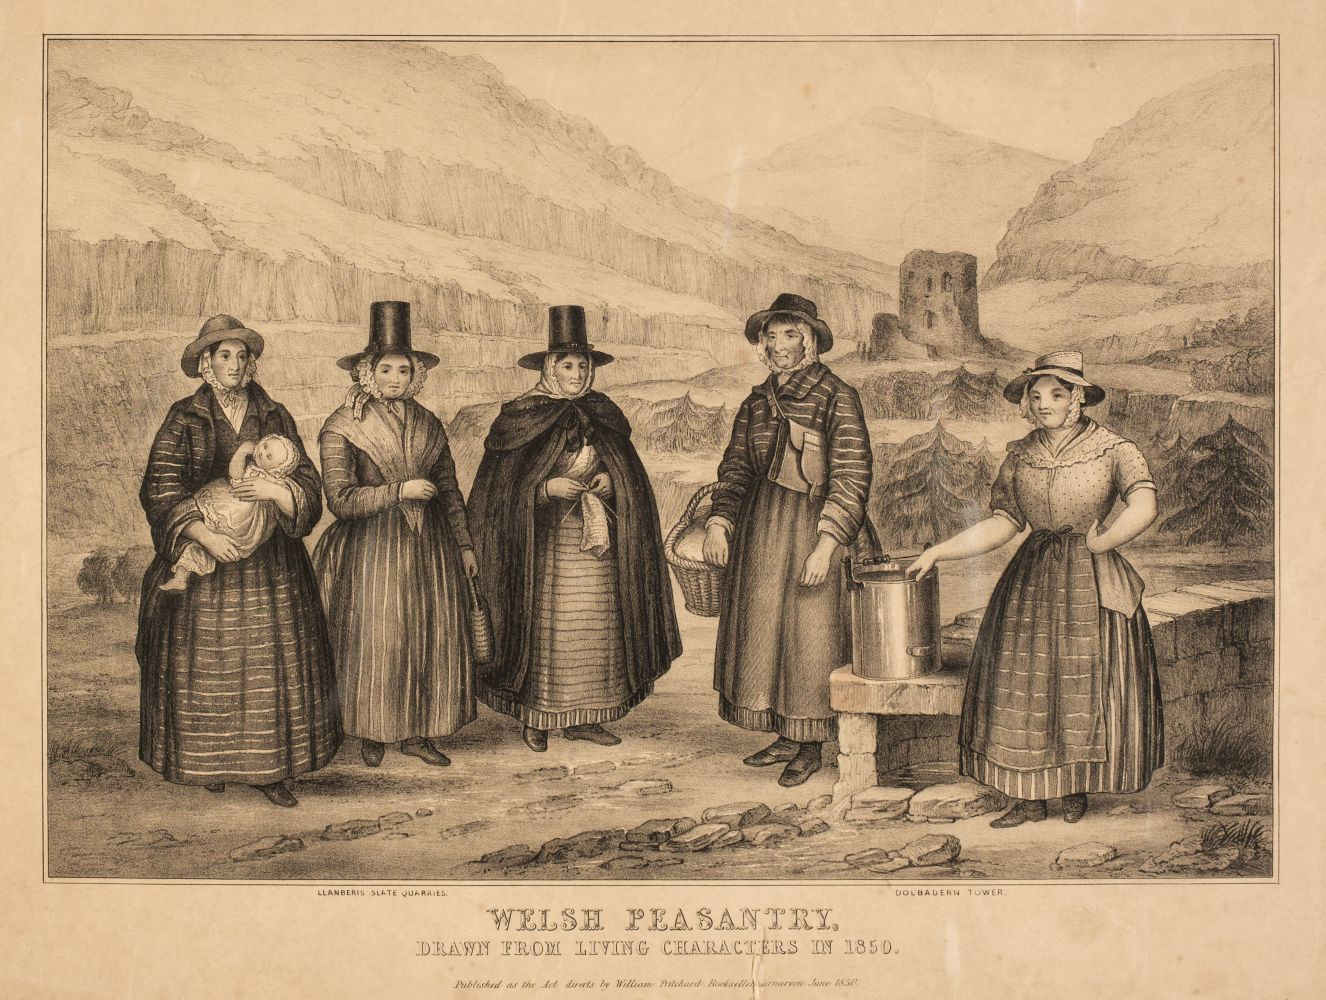 * Prints & engravings. A mixed collection of 30 prints & drawings, 19th & 20th century